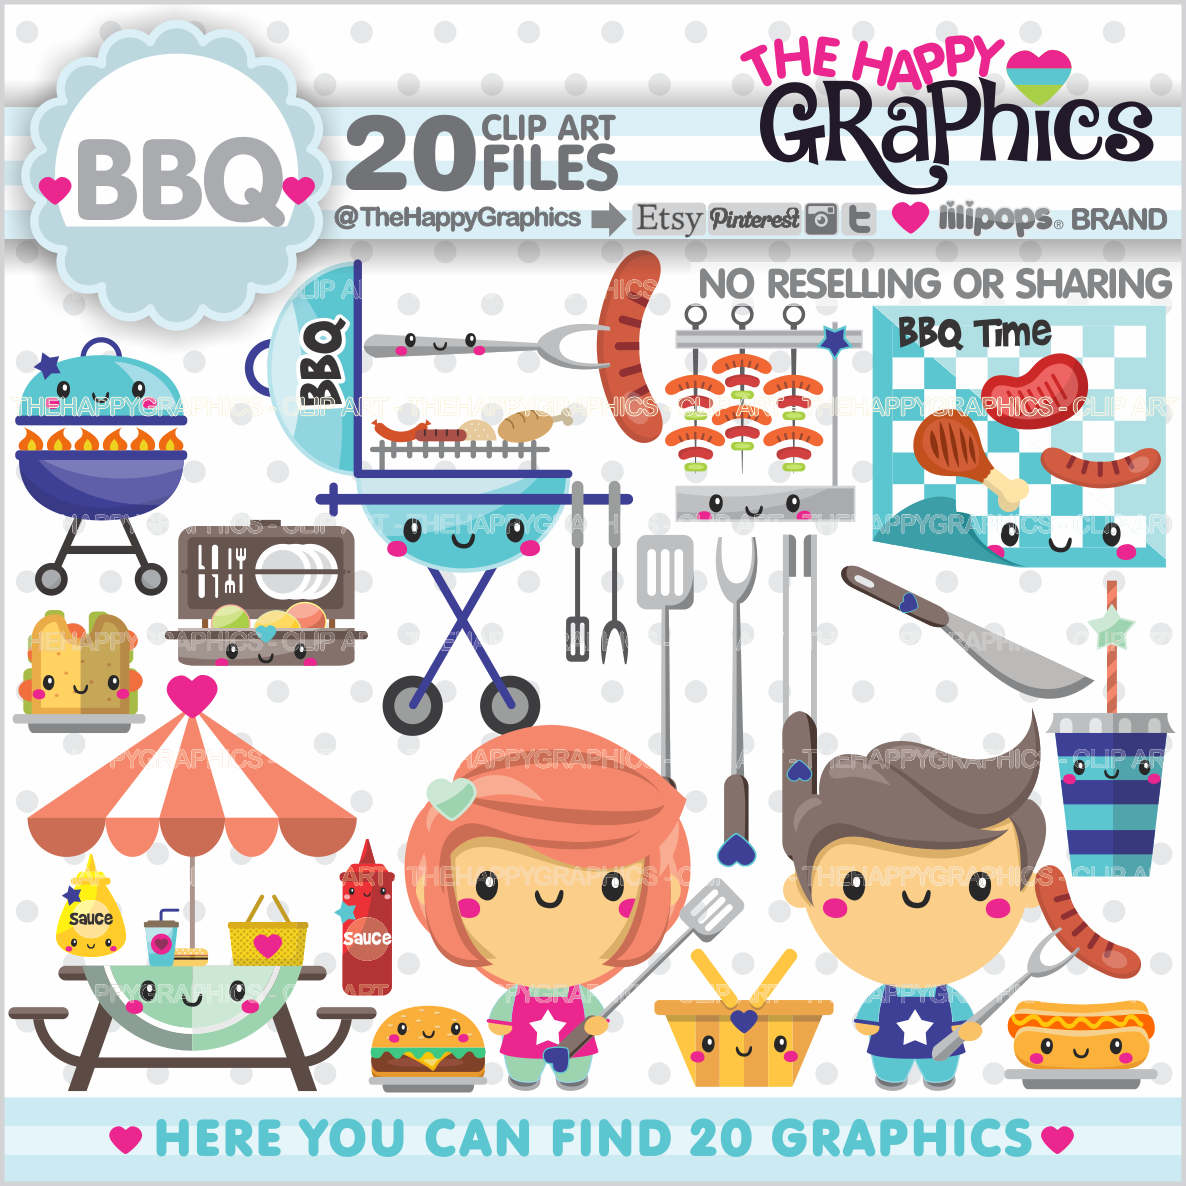 Barbecue clipart bbq time  Kawaii Clipart Graphics BBQ